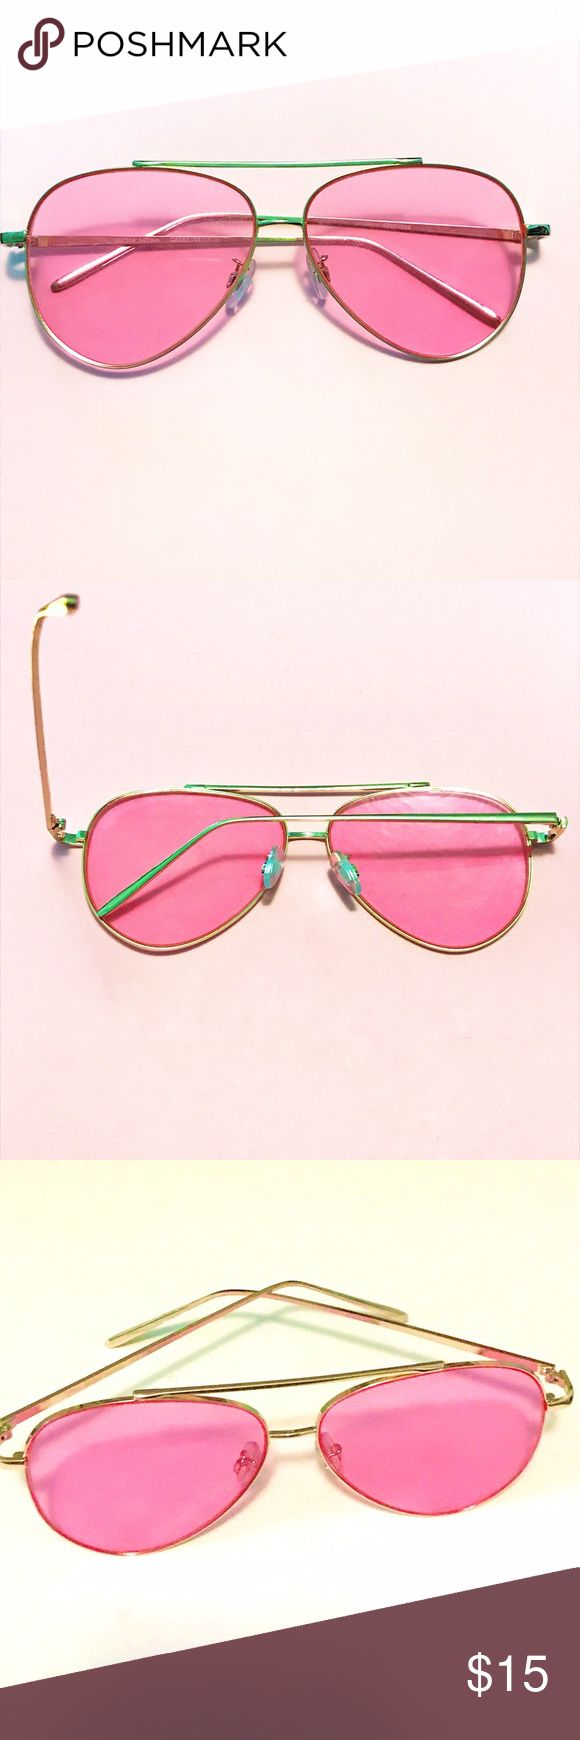 Boho pink lenses with gold rims sunglasses aviator Boho pink lenses with gold rims sunglasses aviators. New without tags. No scratches or defects of any kind these are new never been worn! These are fun and trendy and will add that POP of fun color to make a statement with any summer outfit! ⭐️FAST SHIPPINJ⭐️ Accessories Sunglasses